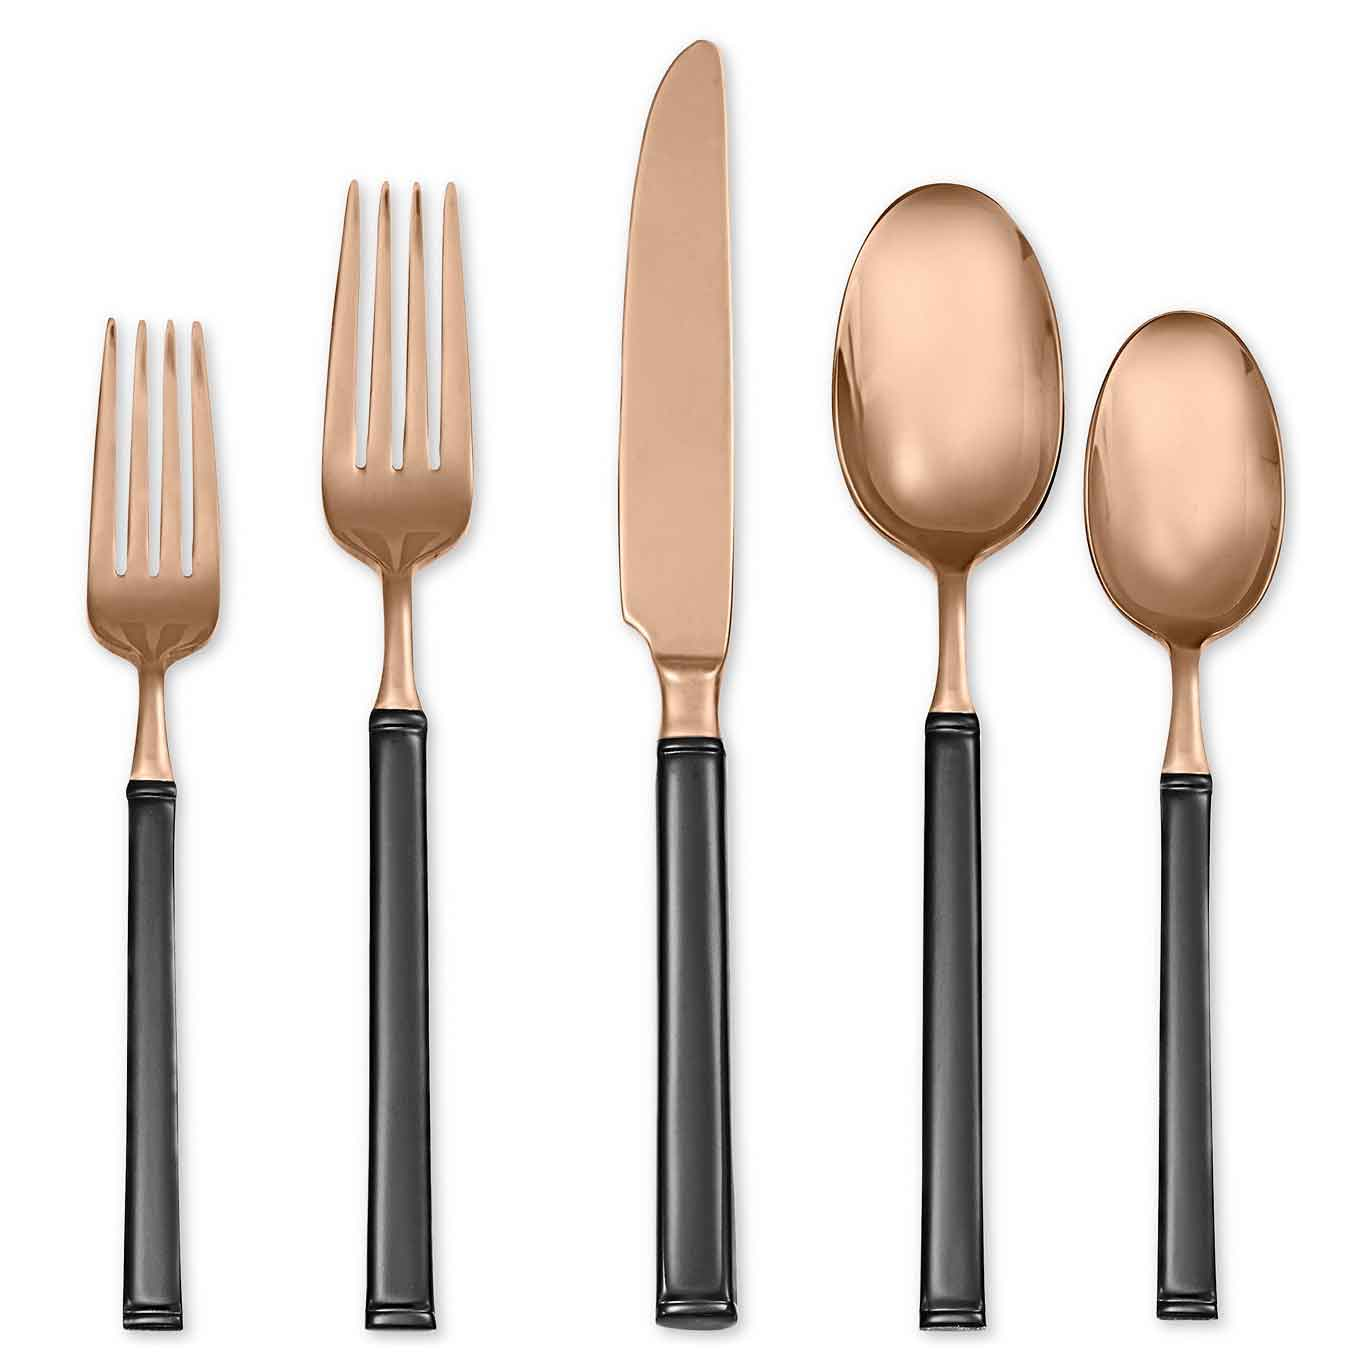 5 Piece Place Setting - Rose Gold